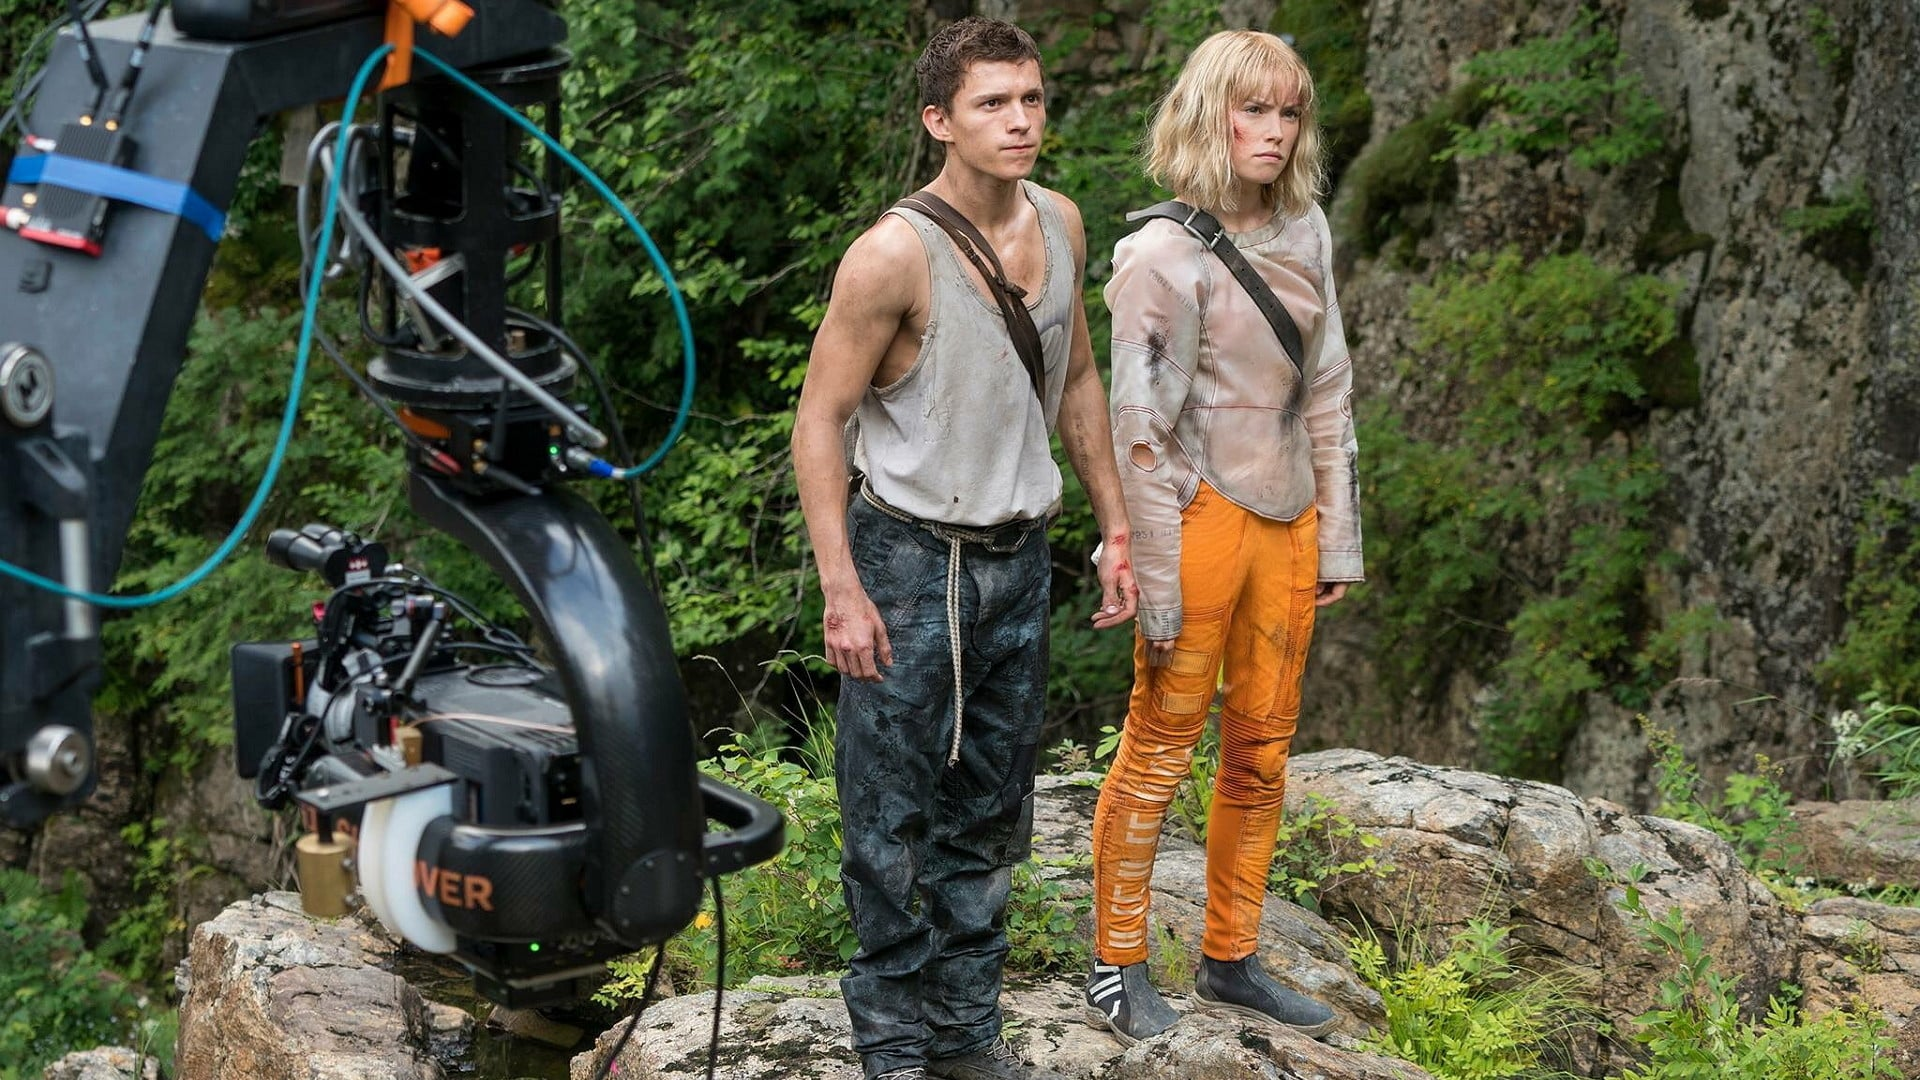 Watch Chaos Walking online now on Lionsgate Play cast review release date hero heroine hit or flop